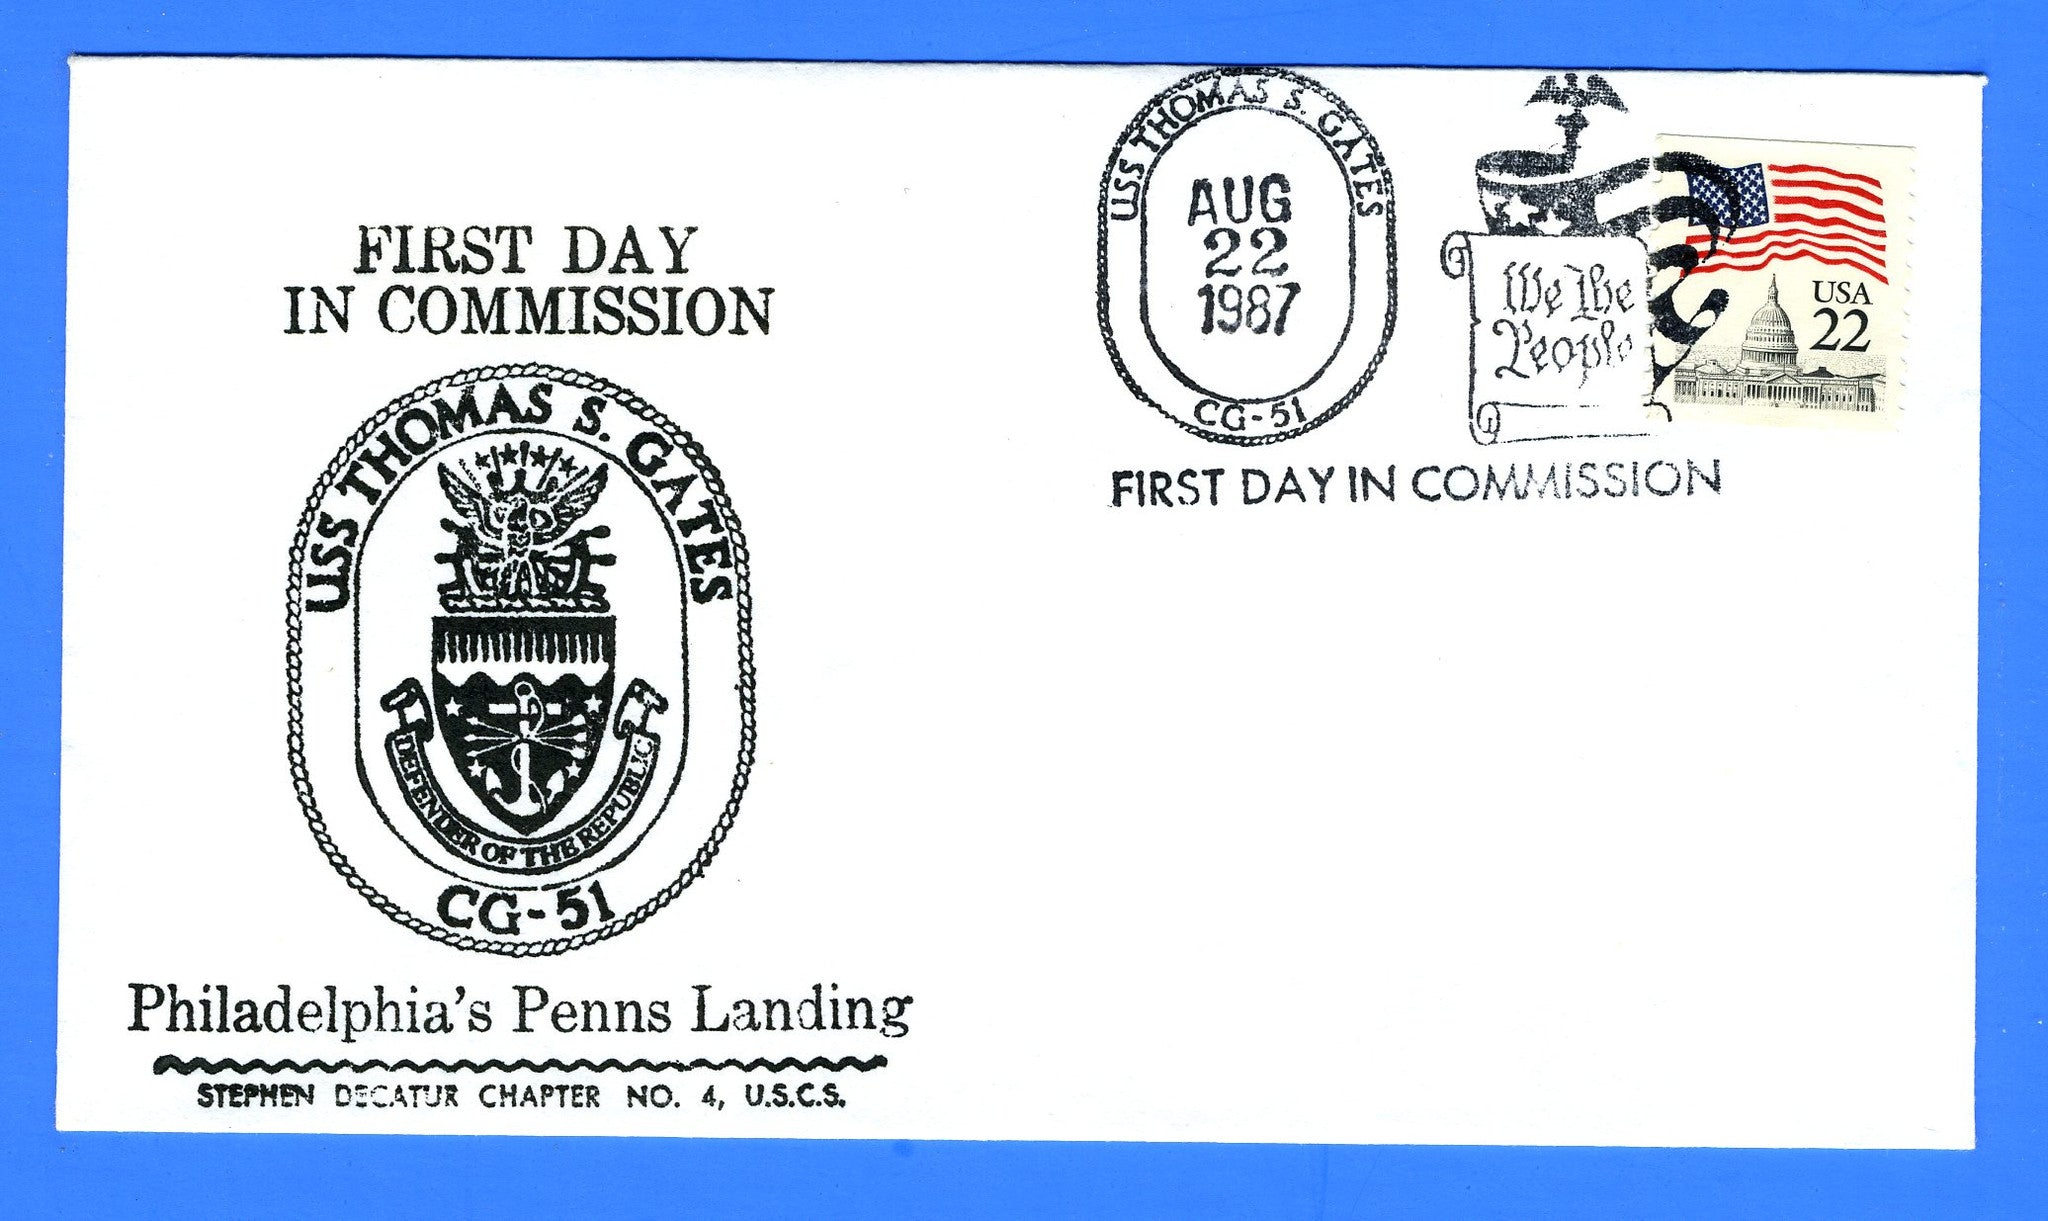 USS Thomas S. Gates CG-51 Commissioned August 22, 1987 - Cachet Maker USCS Chapter 4 Stephen Decatur